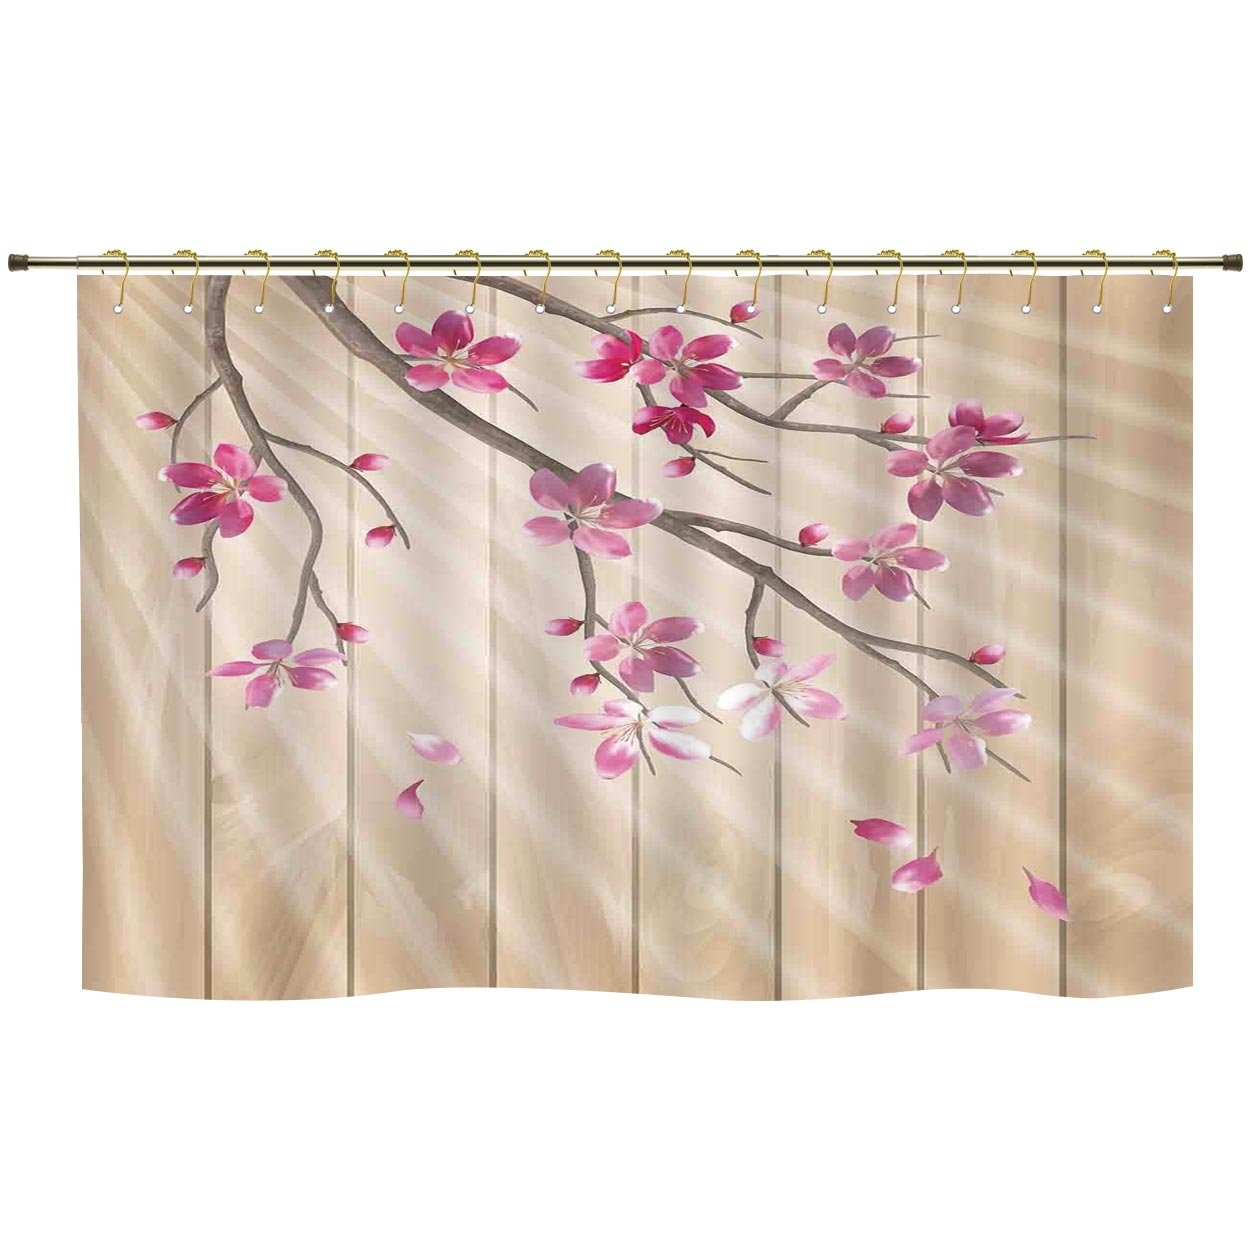 IPrint Shower CurtainHouse DecorSpring Cherry Twig Falling Petals Sun Beams On Wooden Wall Background IllustrationPink CamelPolyester Curtains